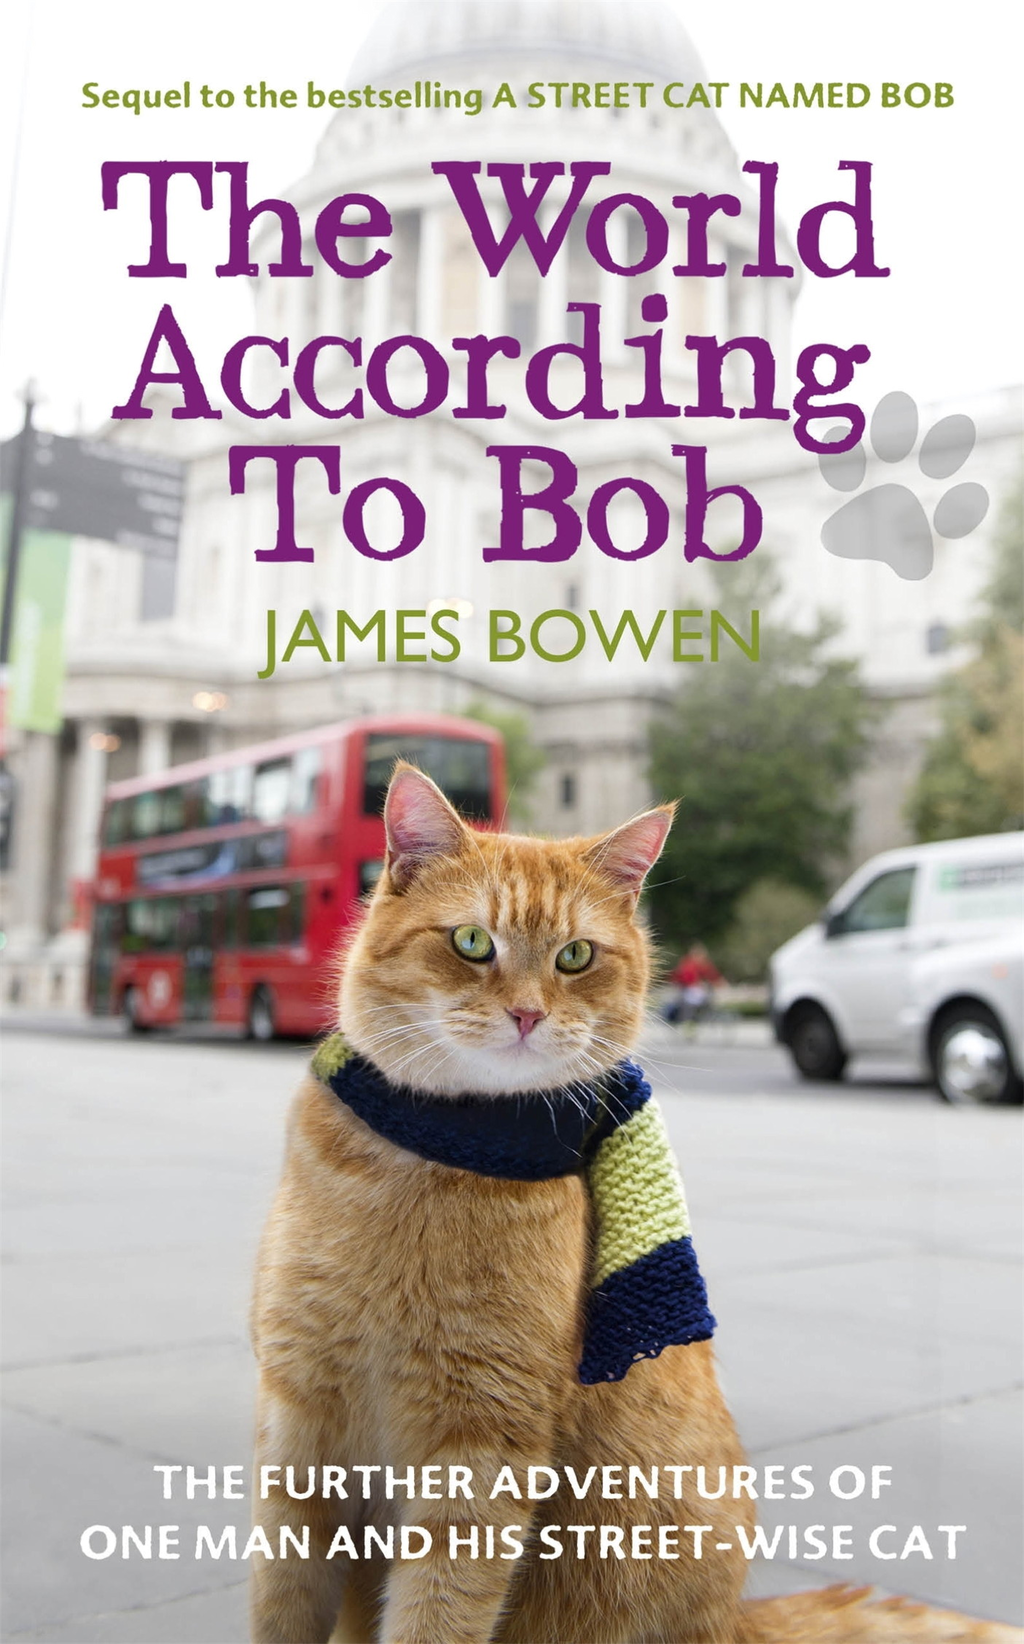 The World According to Bob The further adventures of one man and his street-wise cat